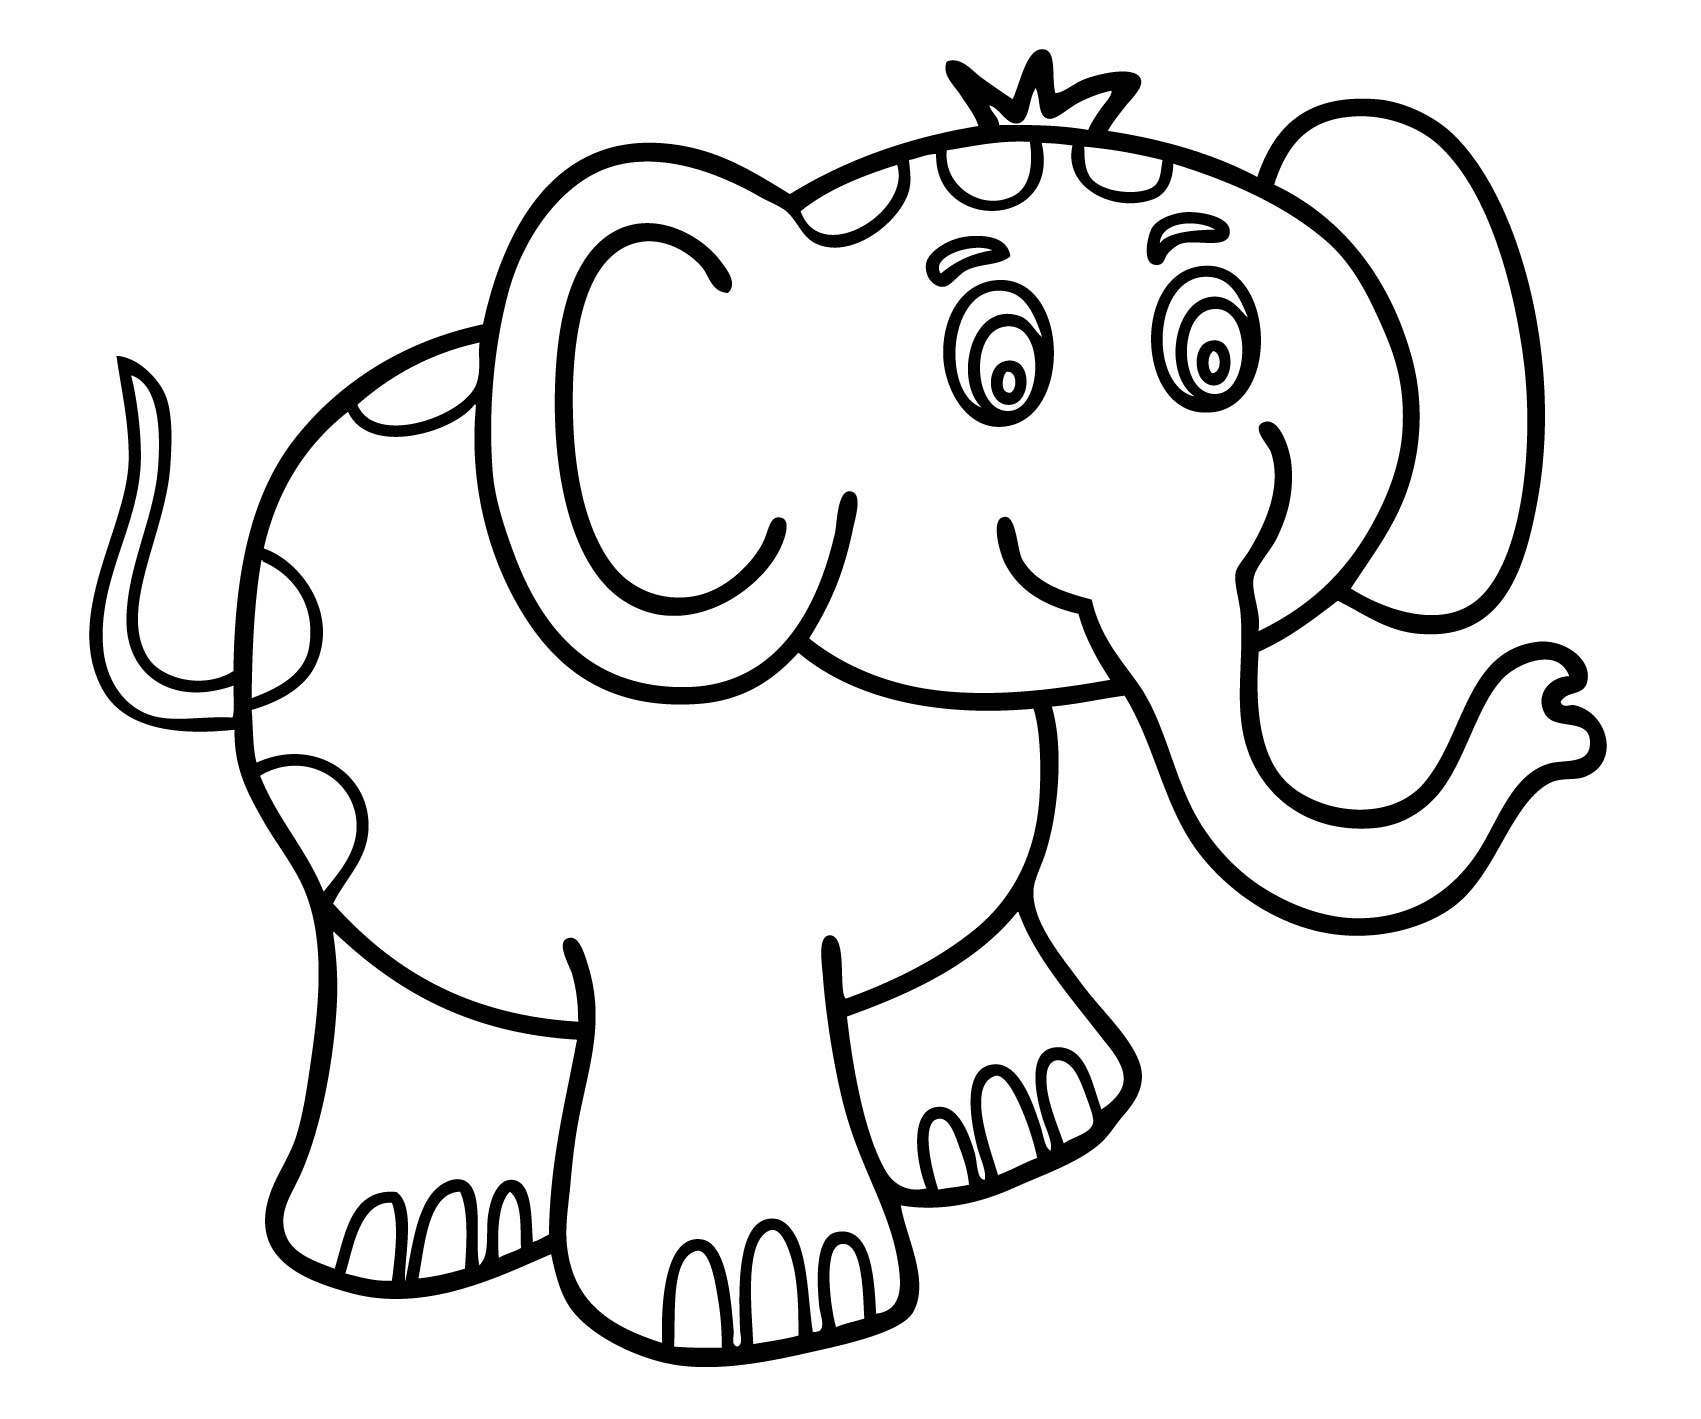 free printable coloring pages for toddlers - luxury toddler coloring pages 47 for coloring for kids with toddler coloring pages